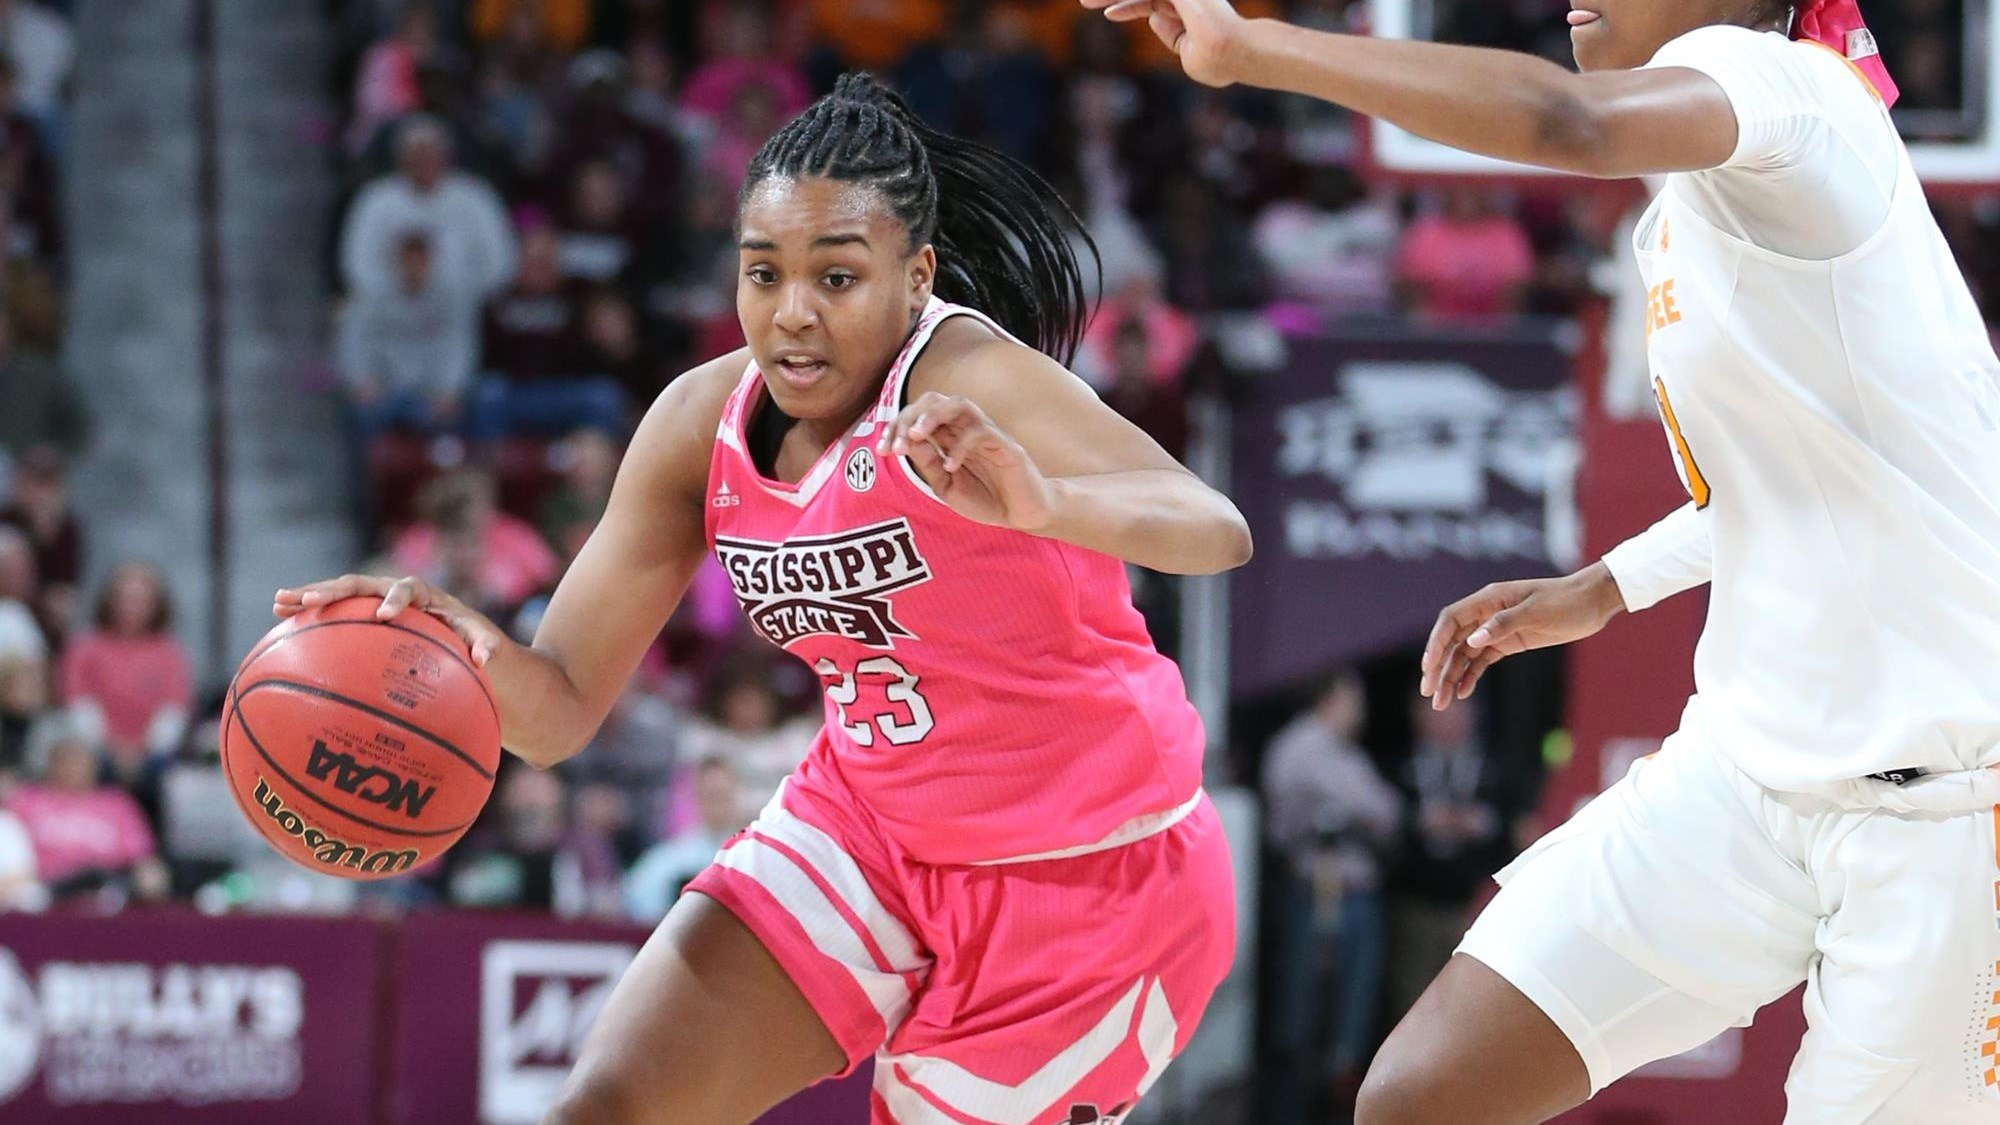 Jordan Danberry shines as Mississippi State hands Tennessee worst loss in SEC play